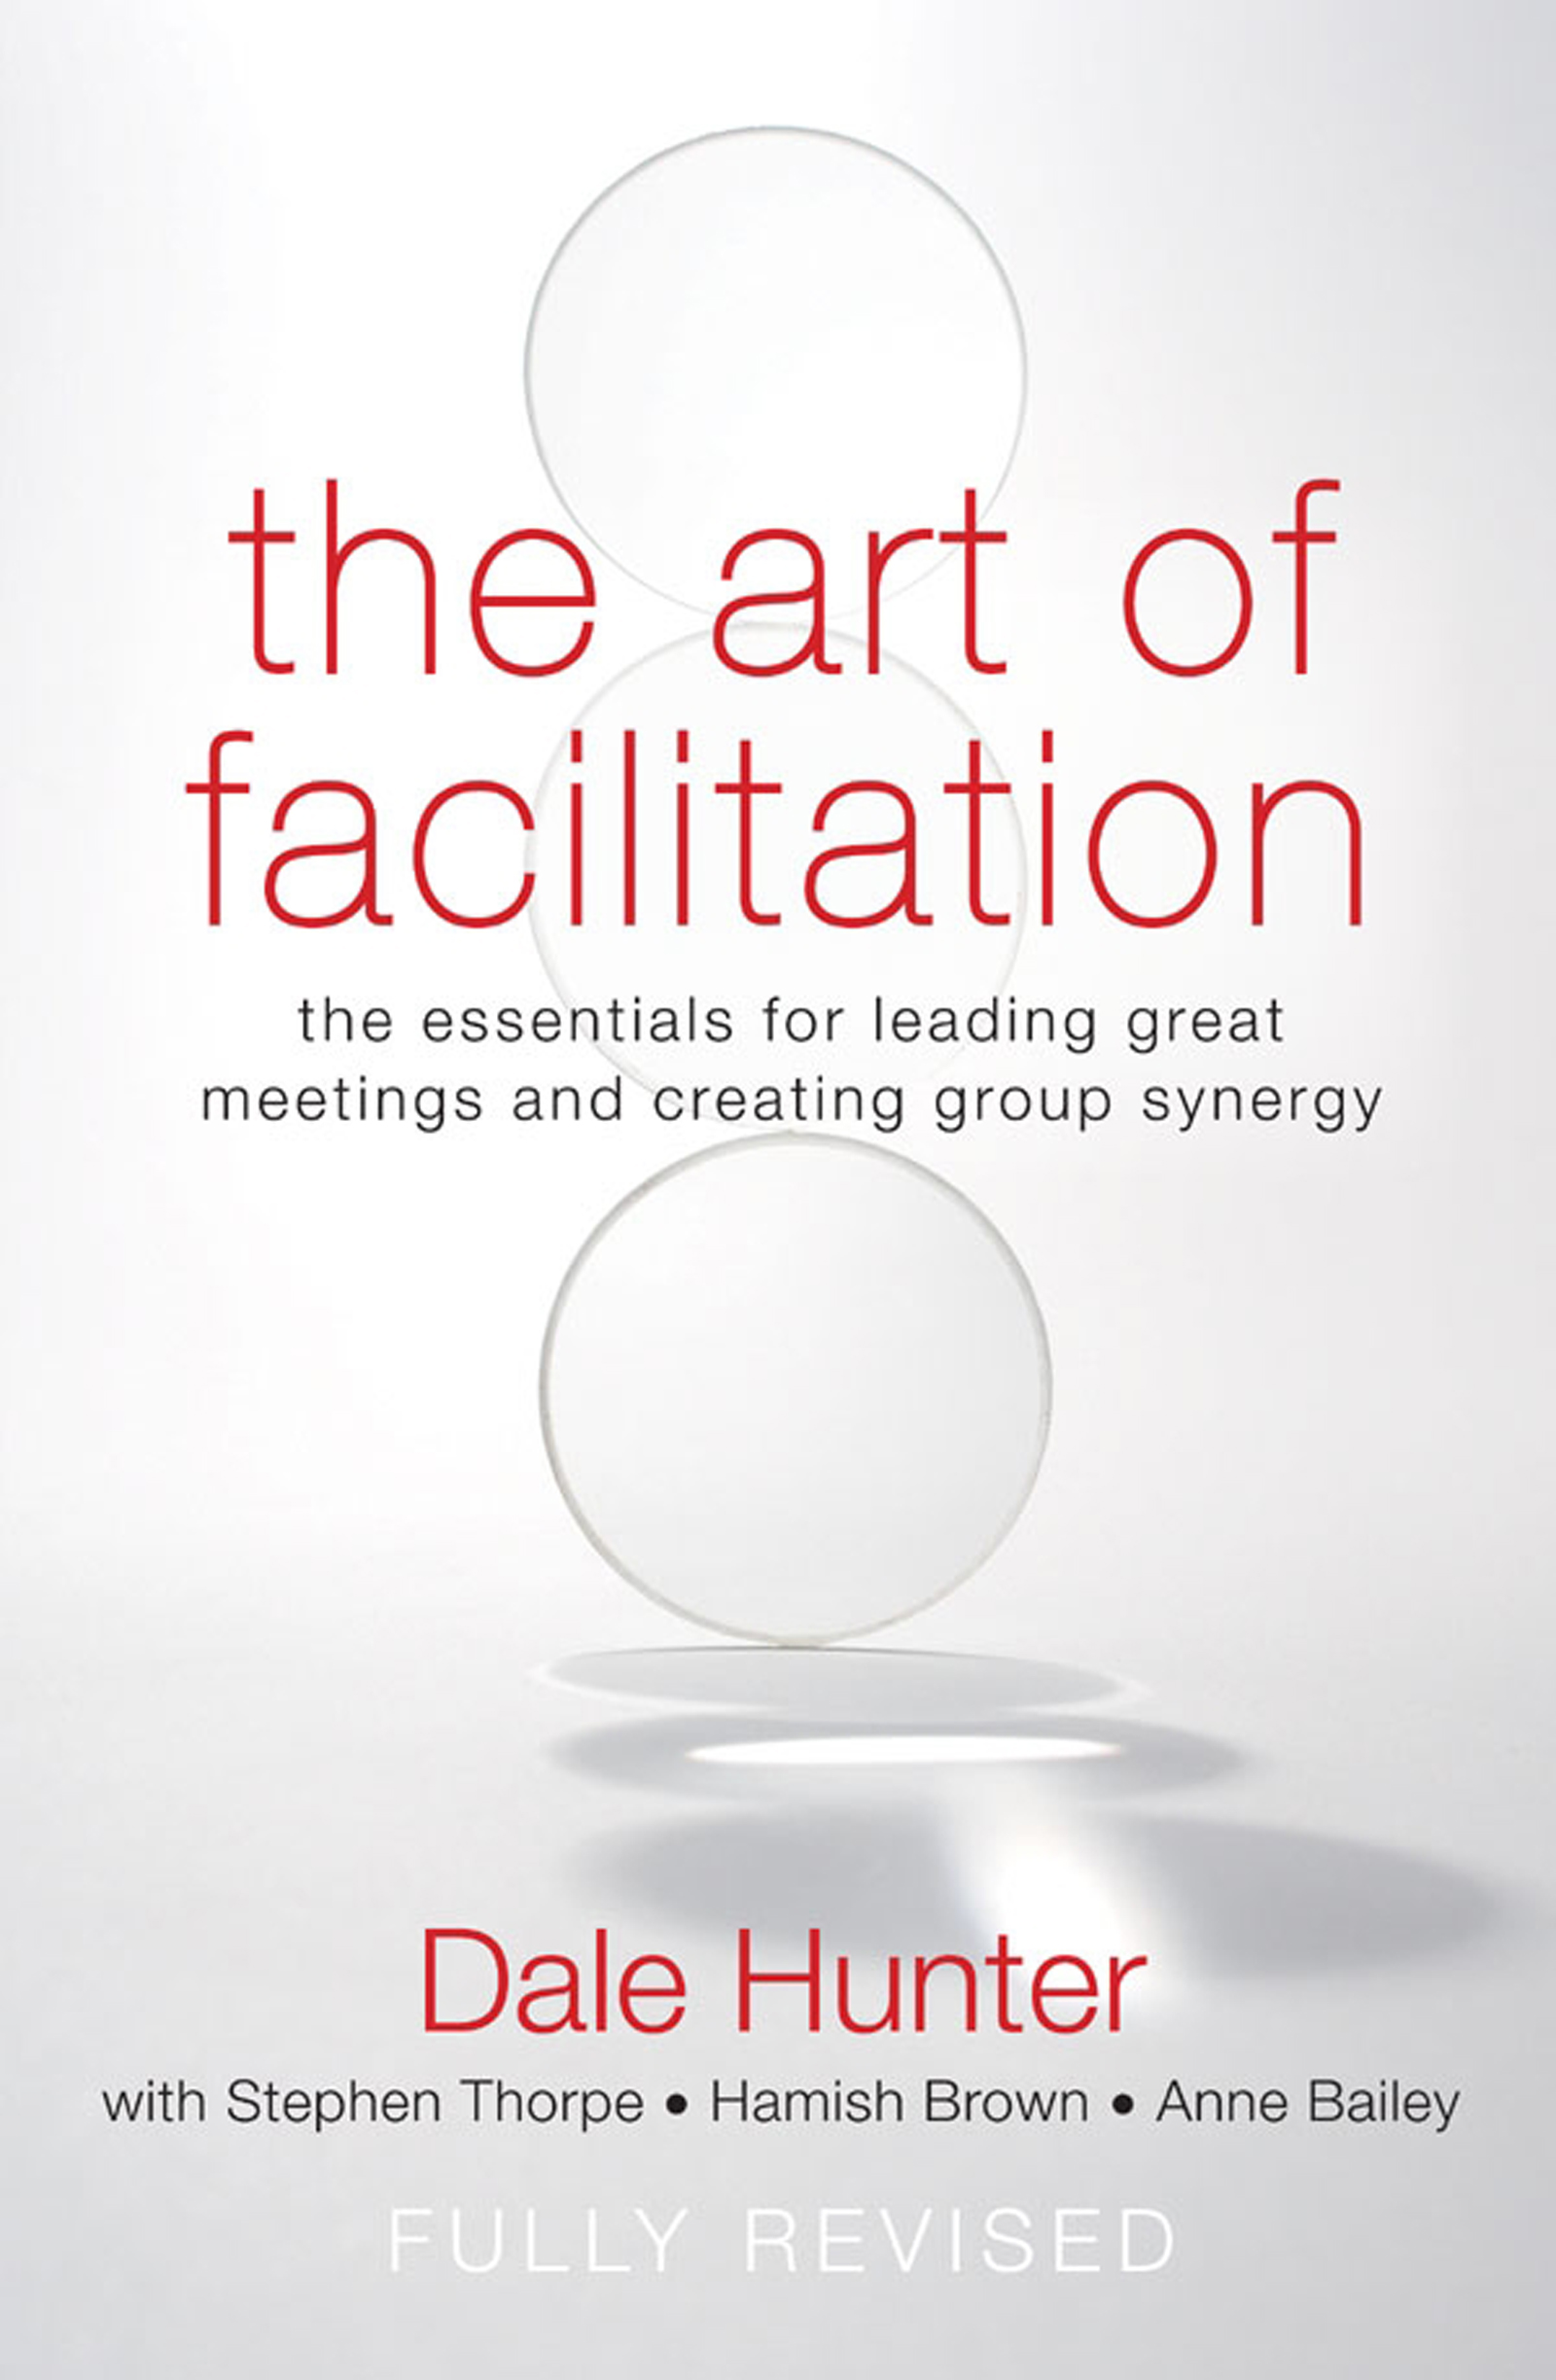 Download Ebook The Art of Facilitation by Dale Hunter Pdf